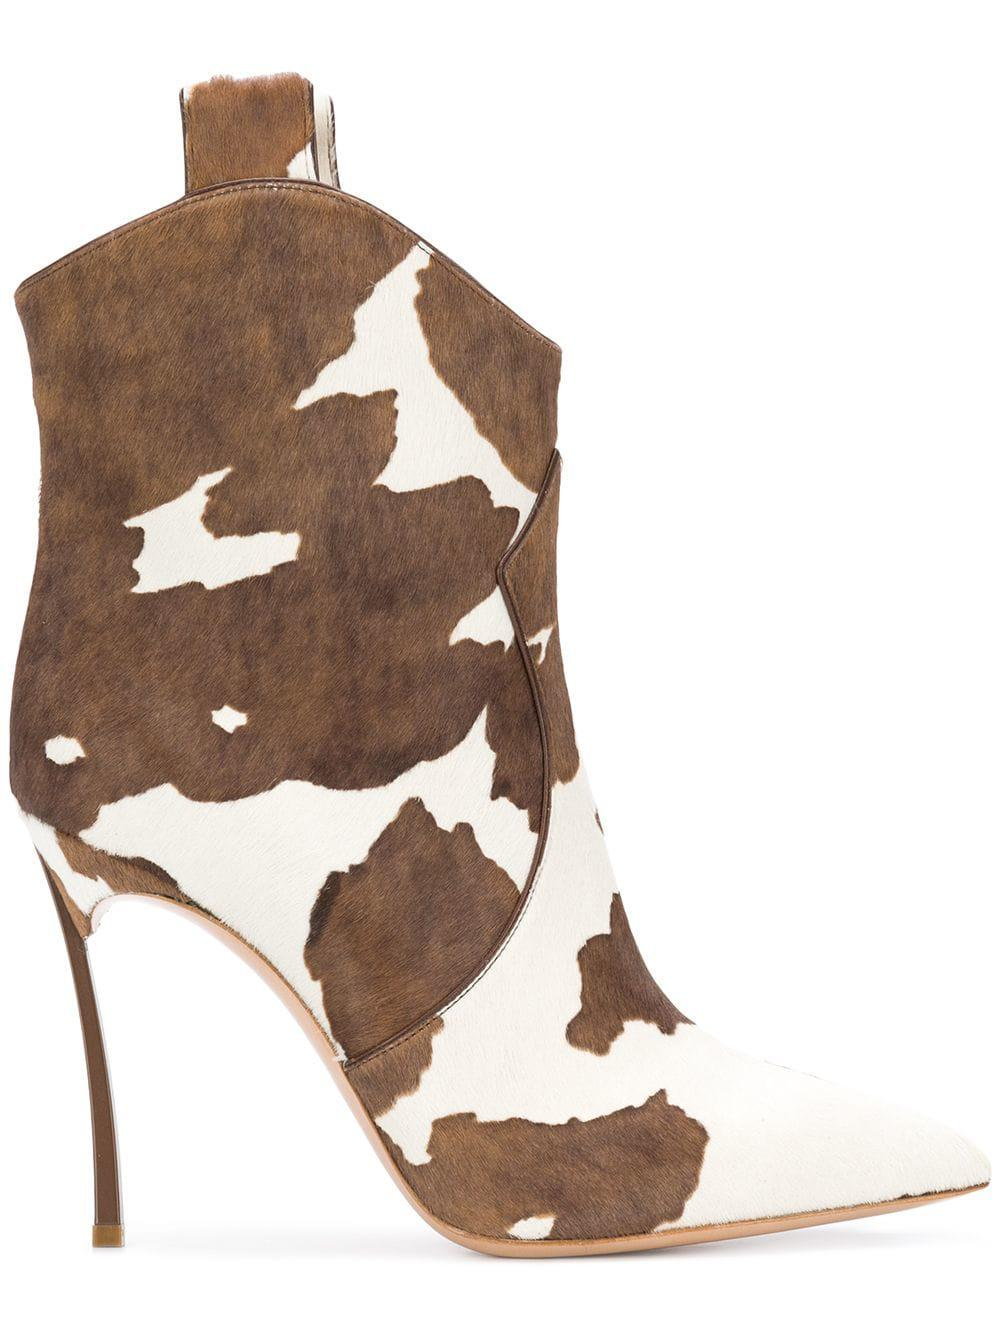 Casadei Leather Cow Pattern Cowboy Boots in White